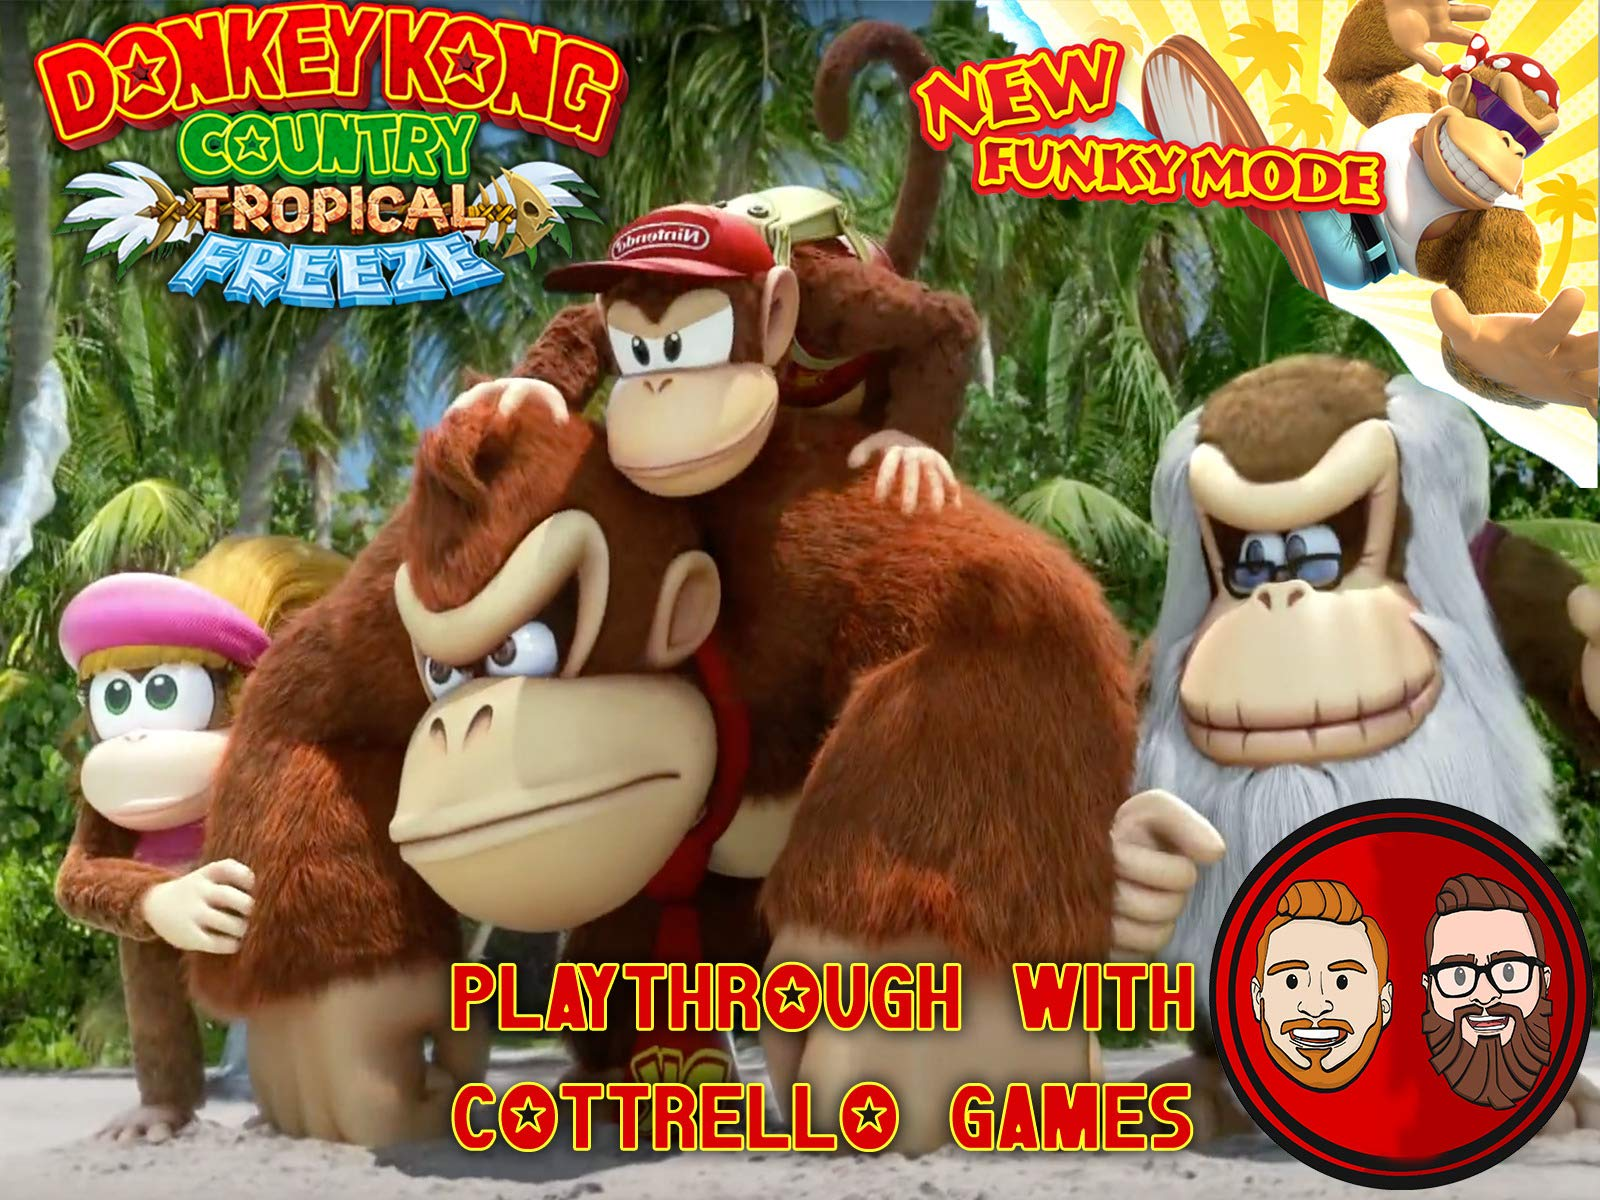 Donkey Kong Country Tropical Freeze Playthrough with Cottrello Games on Amazon Prime Instant Video UK